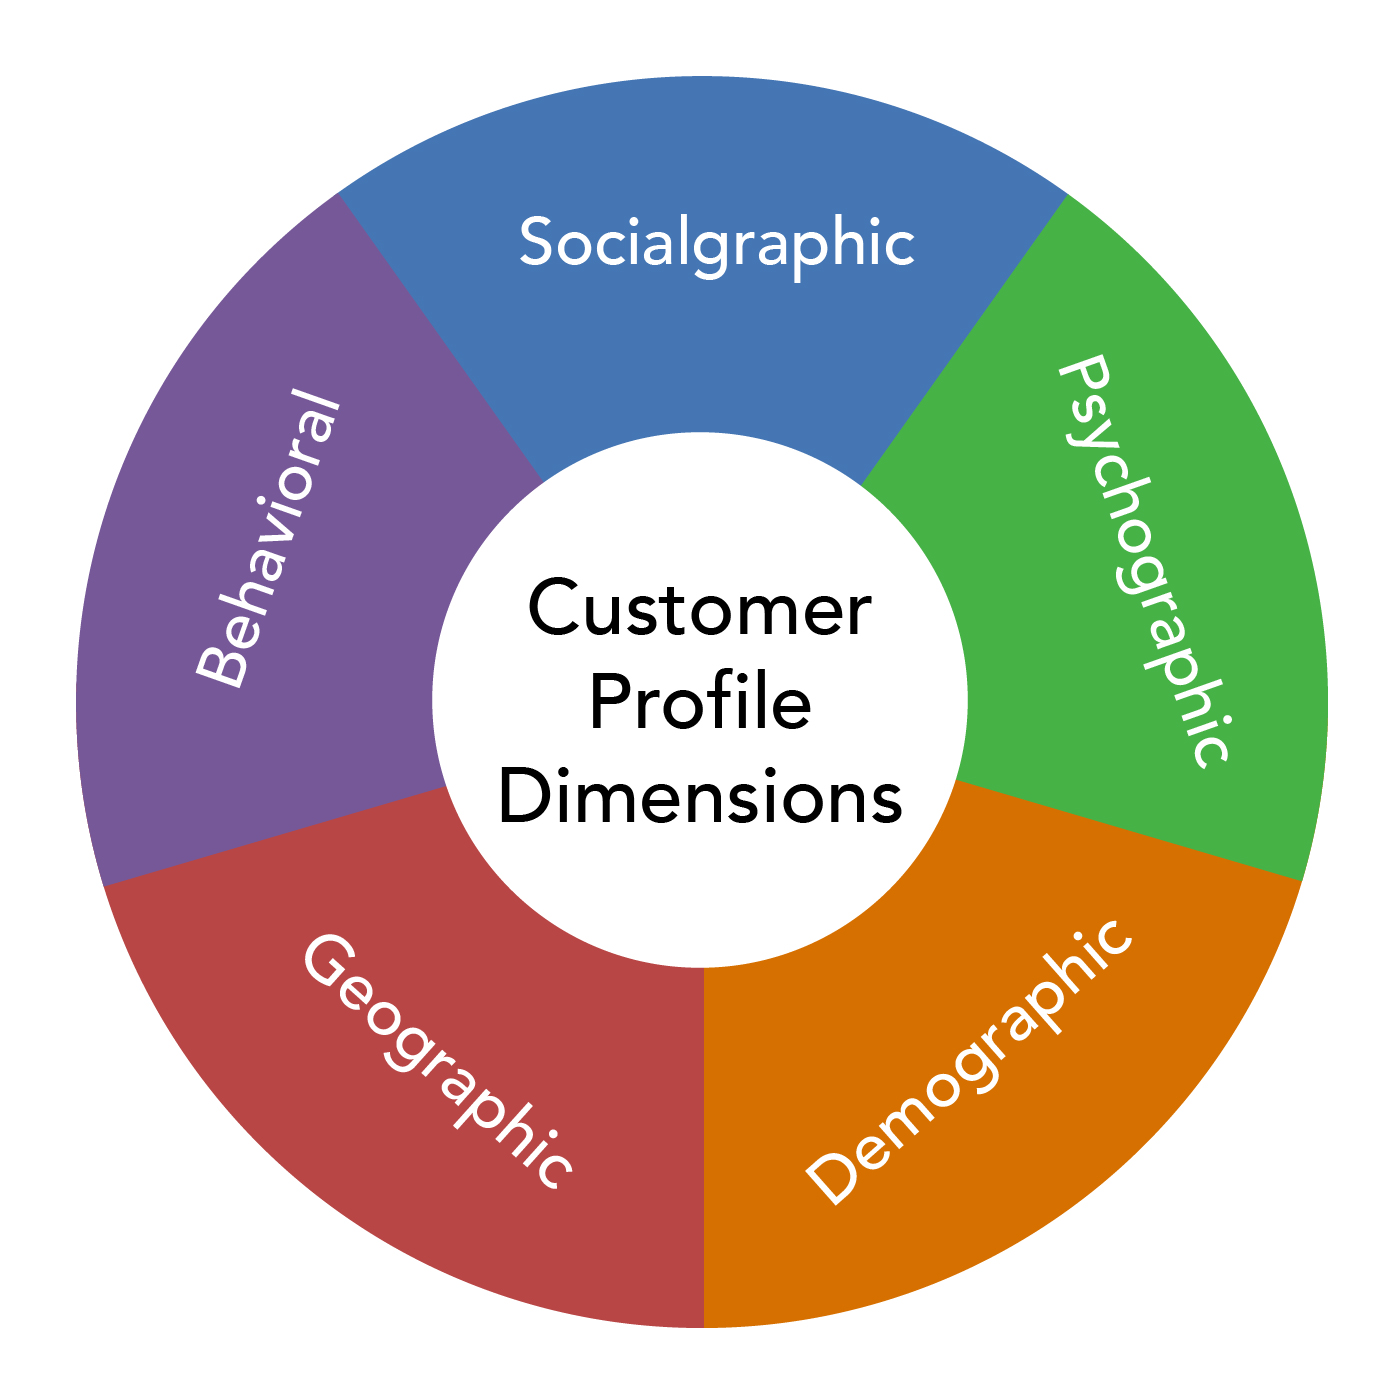 Graphic showing the dimensions of a customer profile. These are: socialgraphic, behavioral, psychographic, geographic, demographic.